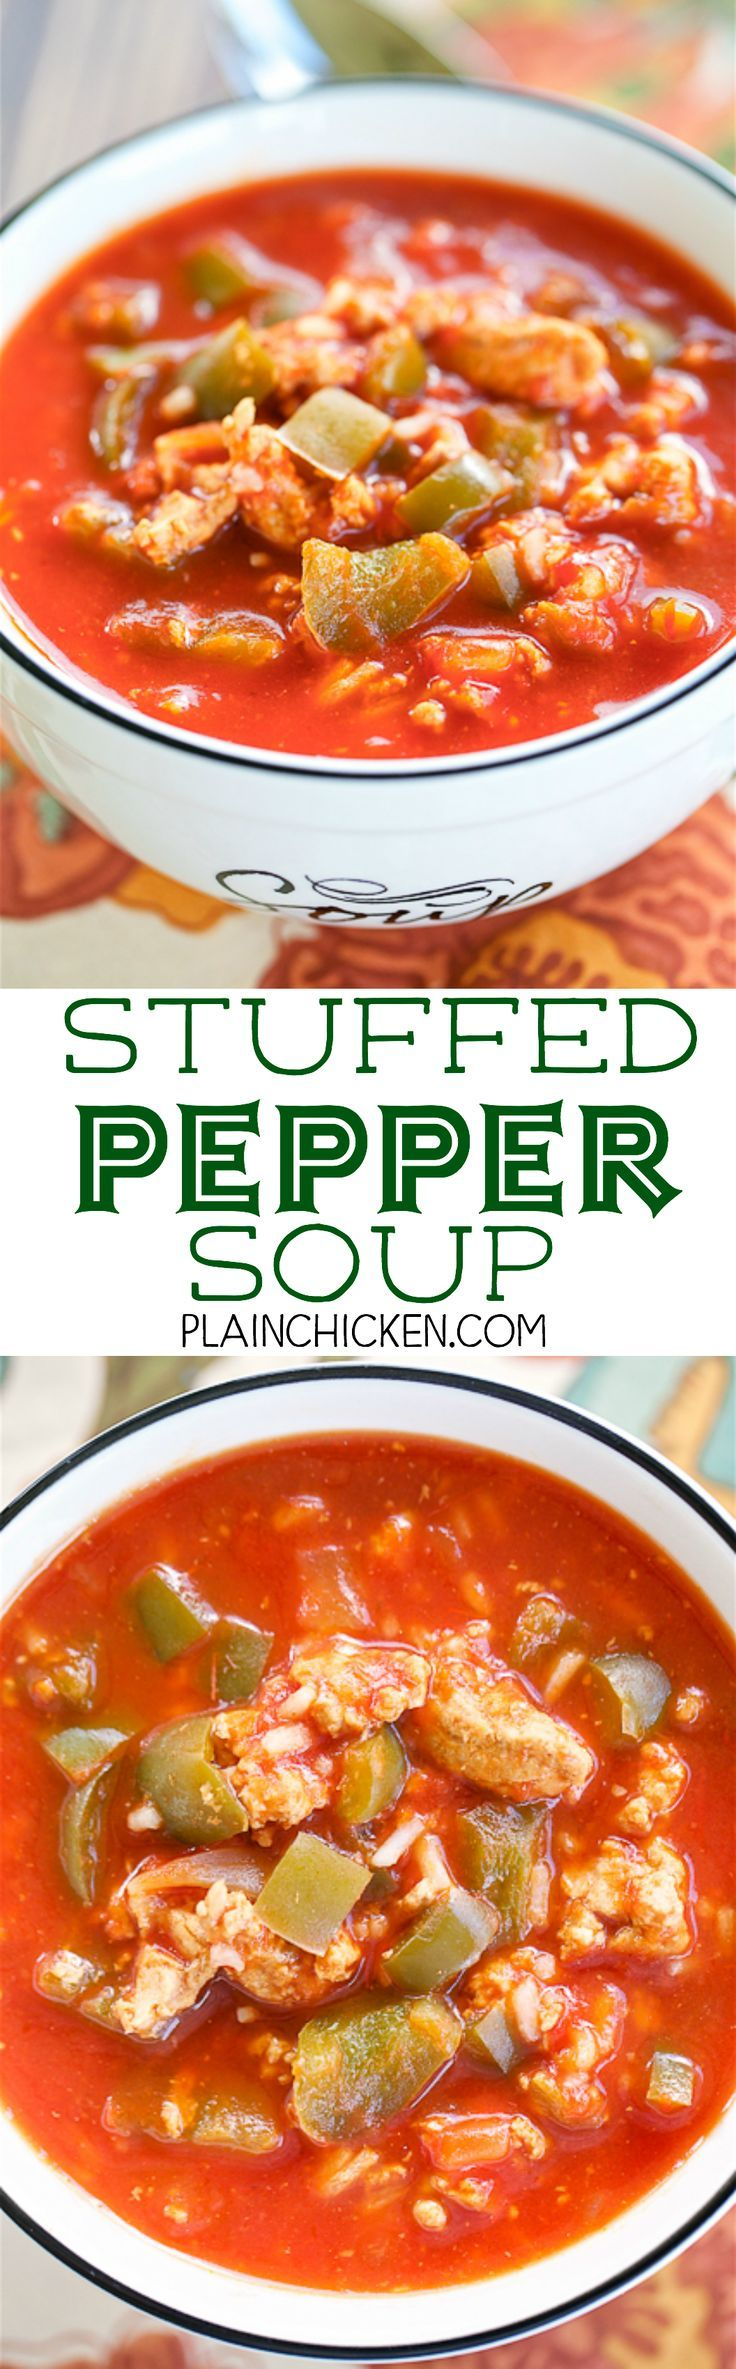 Stuffed Pepper Soup Ready In 30 Minutes Ground Turkey Green Peppers Onion Garlic Tomato Soup Beef Brot Stuffed Peppers Stuffed Pepper Soup Stew Recipes